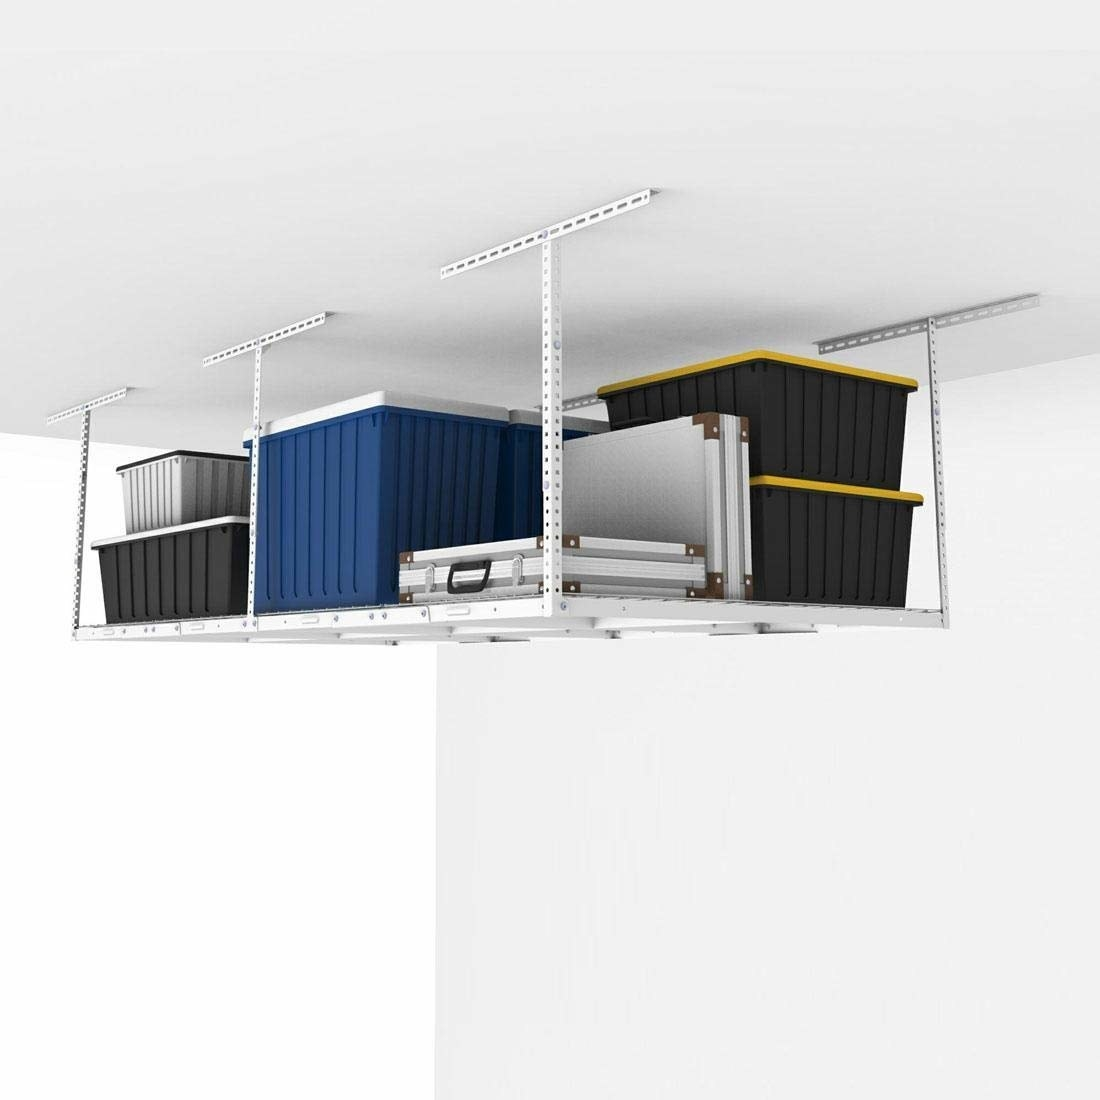 the rack mounted to a garage ceiling with containers